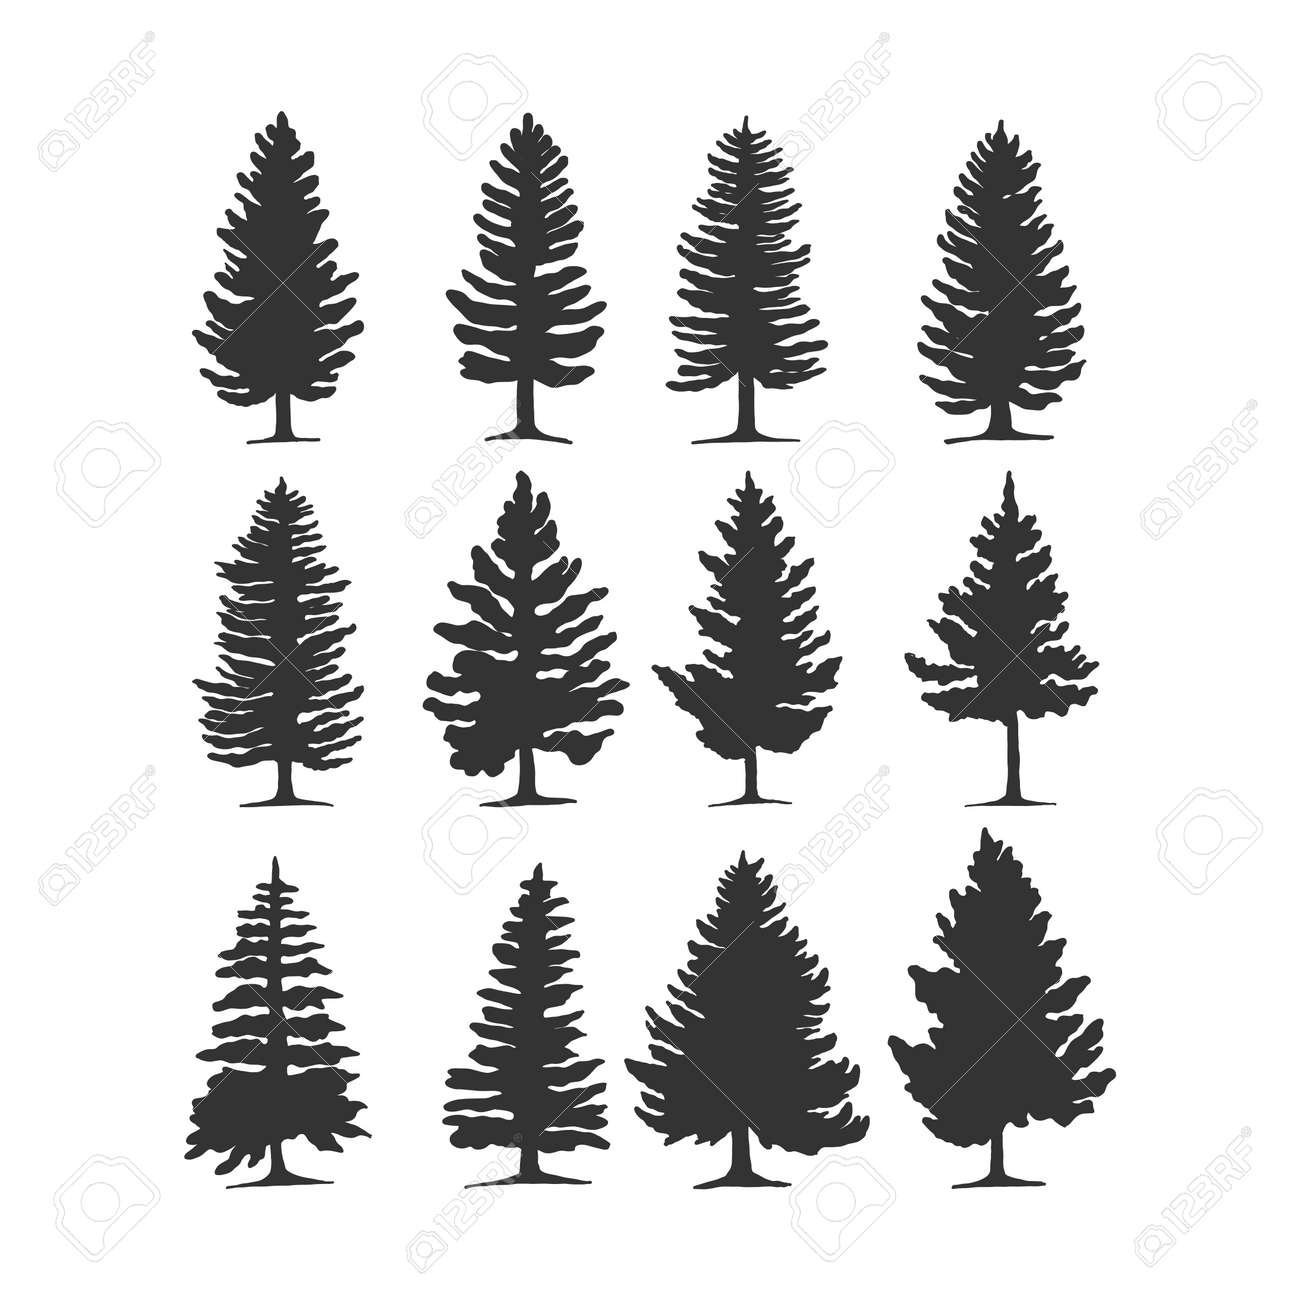 pine tree vector silhouette illustration. good for nature design or decoration template. simple grey color - 169471224